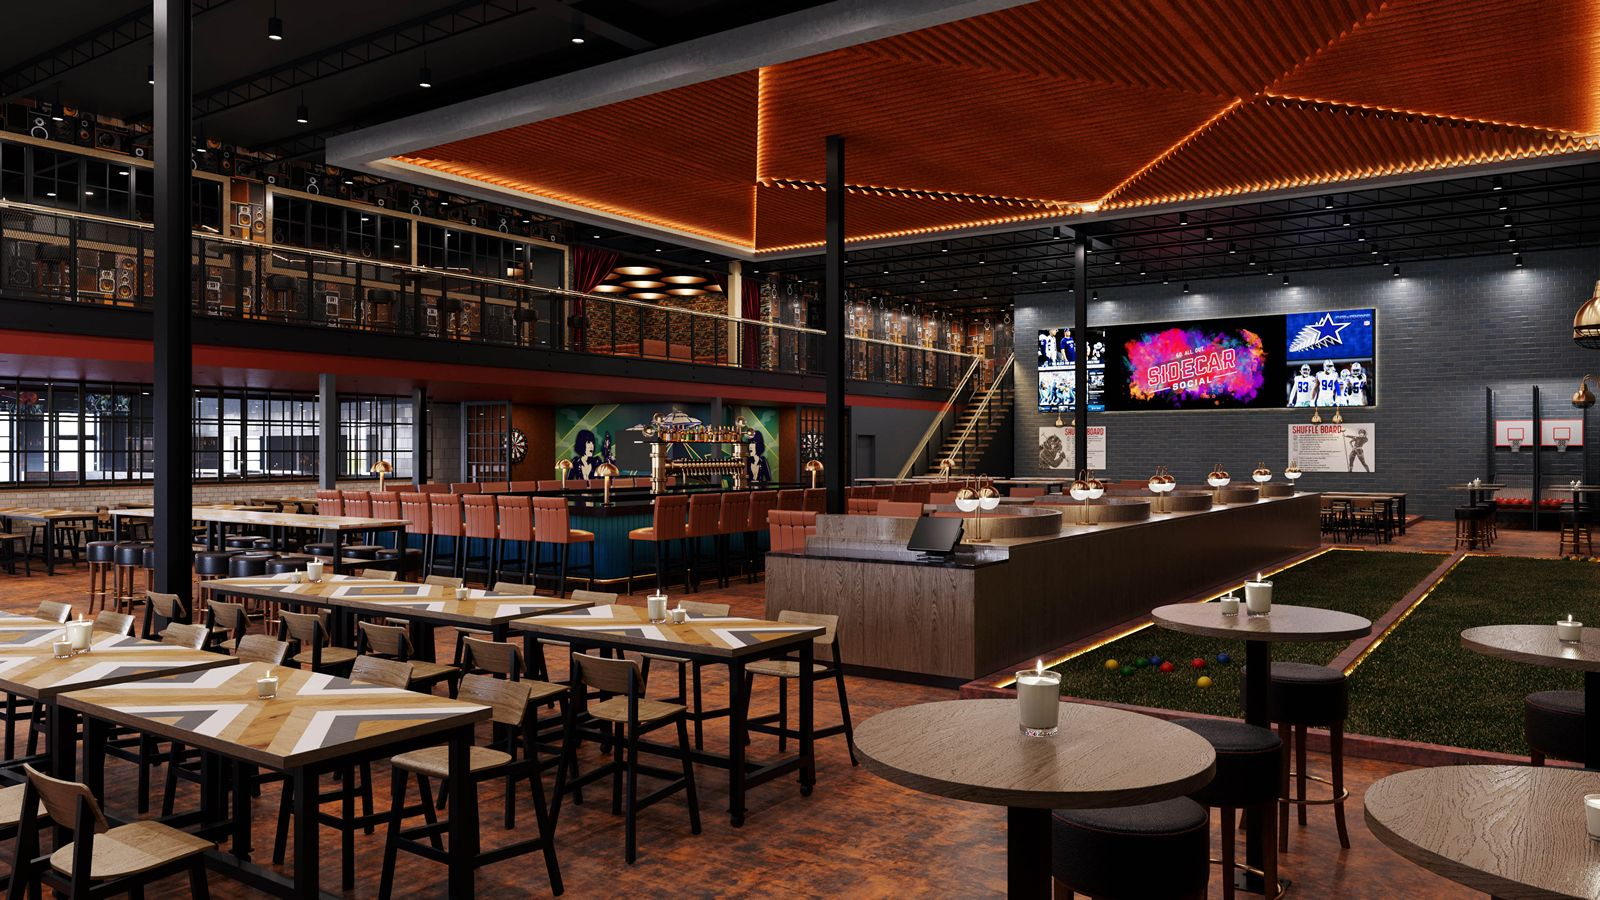 Harrison Develops Concept for New Social Lounge Experience Sidecar Social